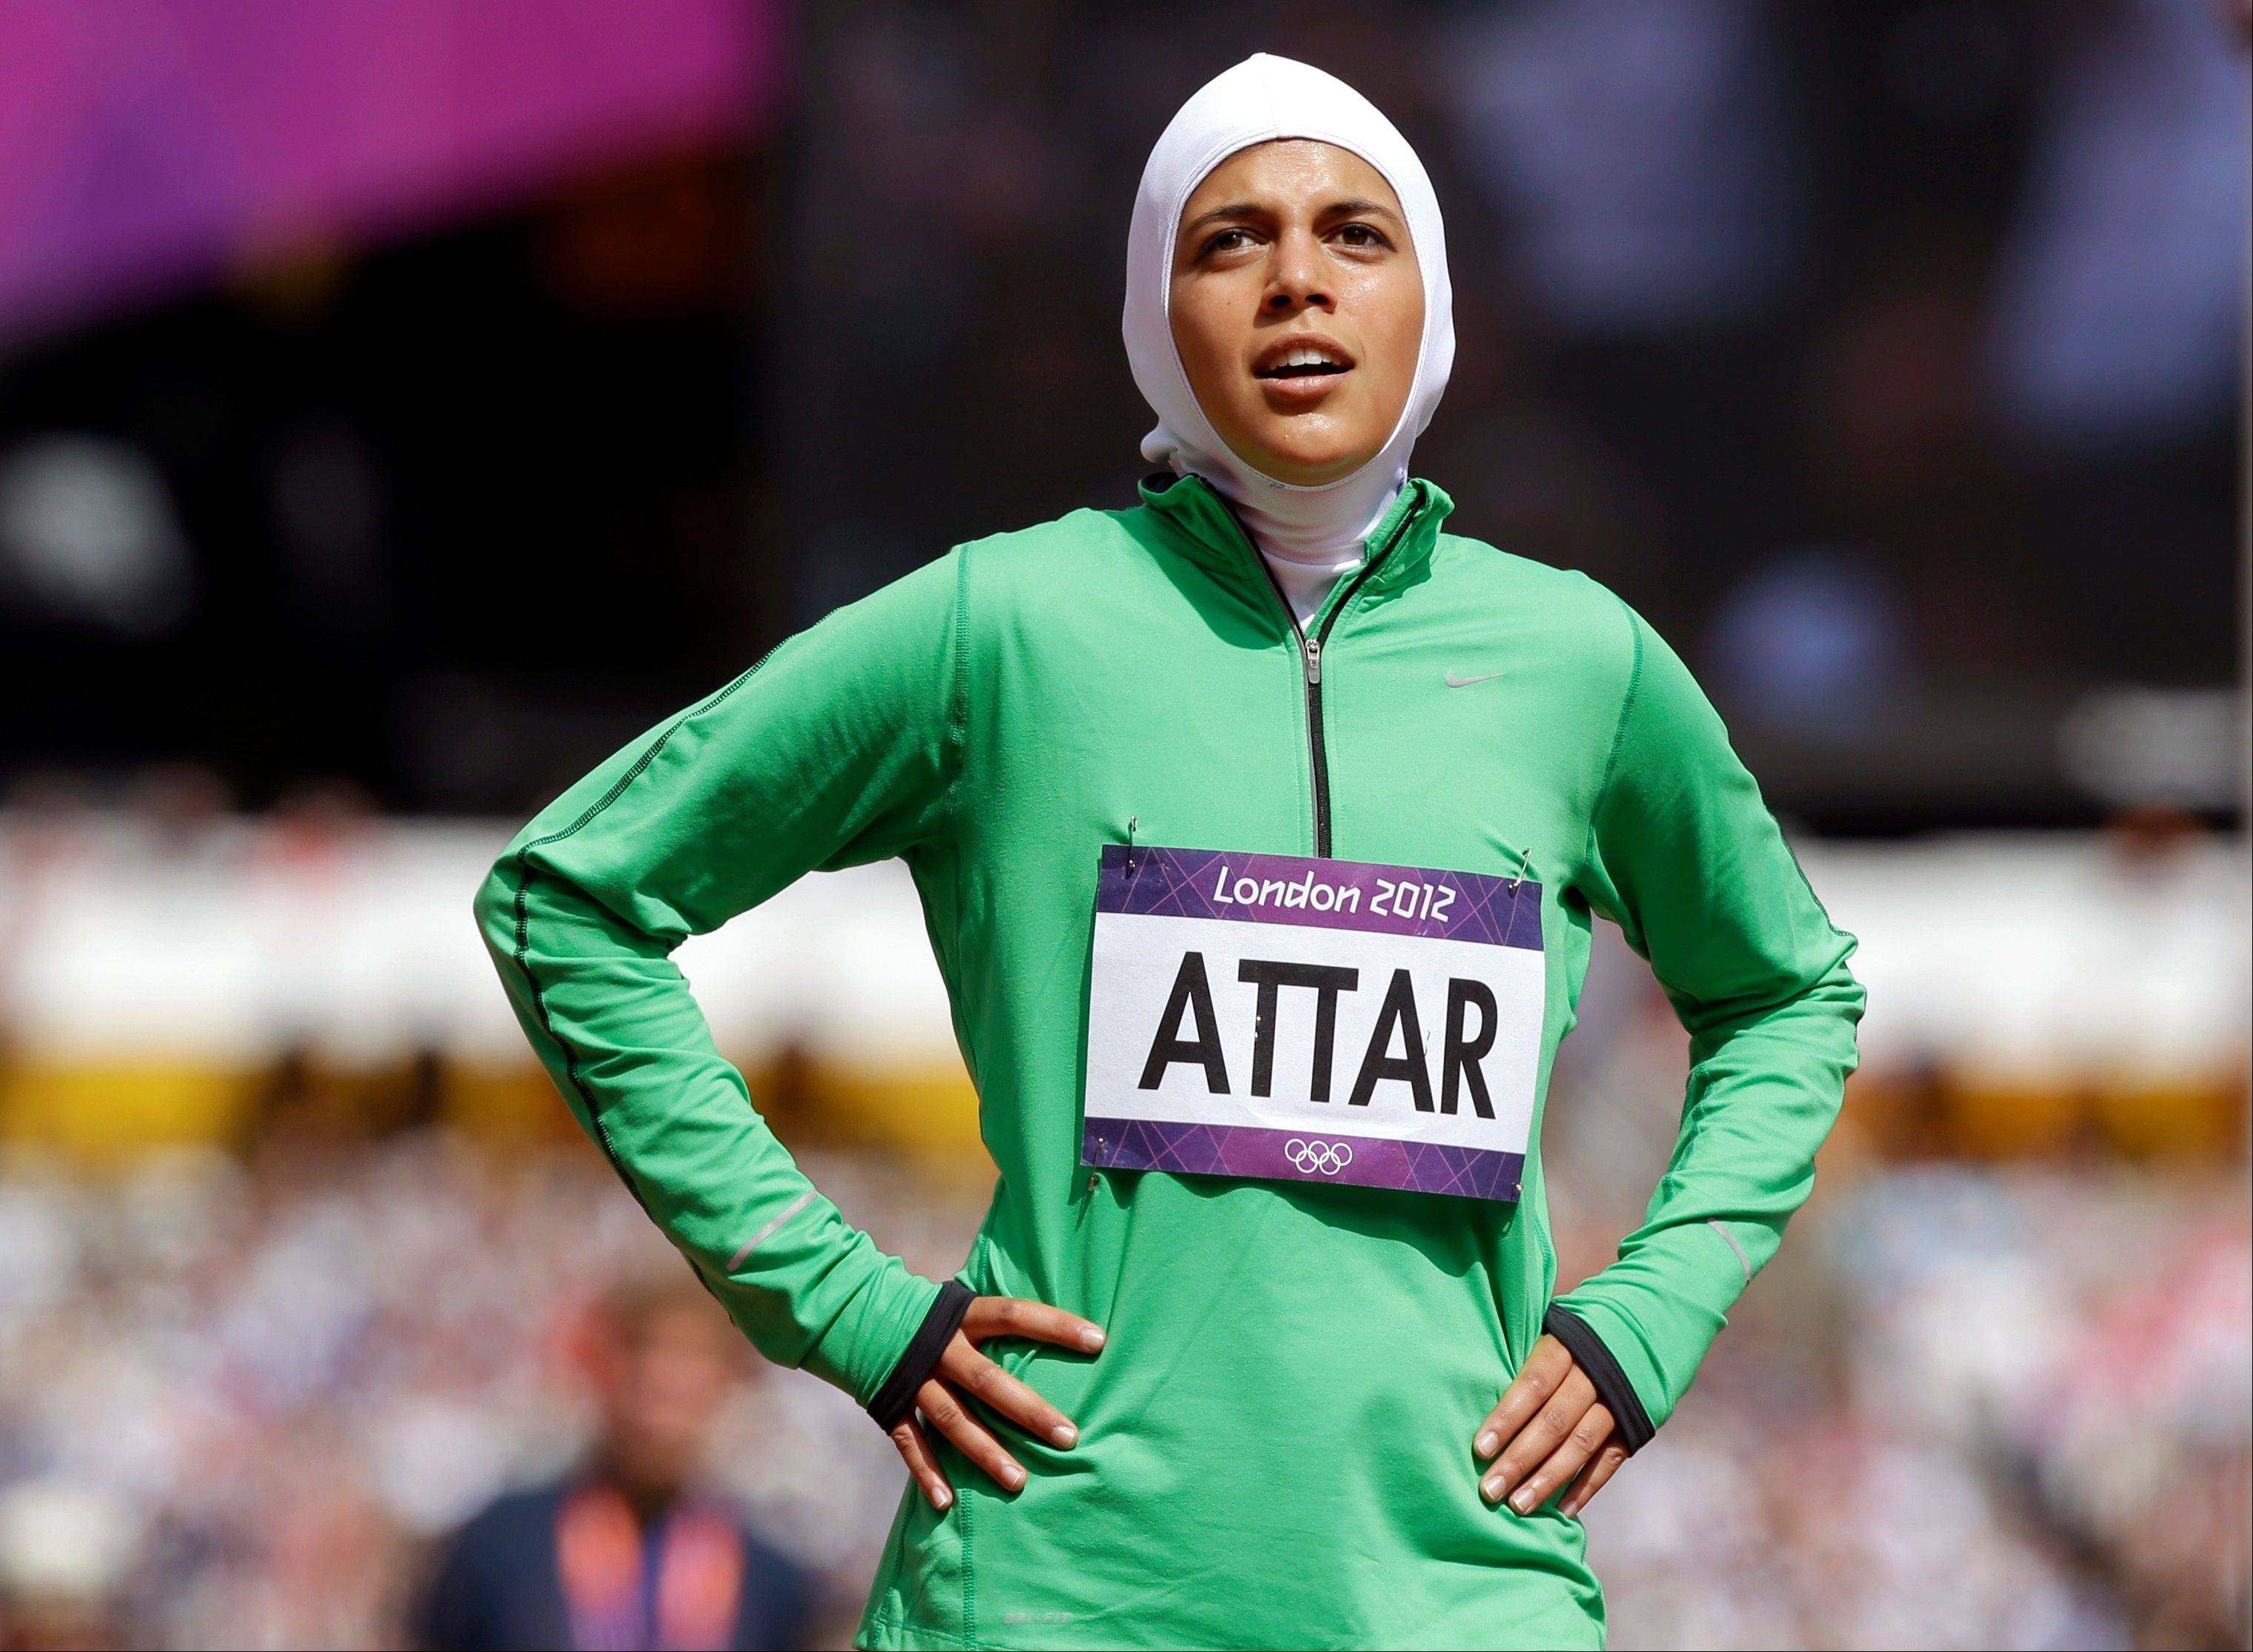 Saudi Arabia's Sarah Attar reacts after competing in a women's 800-meter heat during the athletics in the Olympic Stadium at the 2012 Summer Olympics, London, Wednesday, Aug. 8, 2012. Attar is the first Saudi woman to compete in track and field during the Olympics.